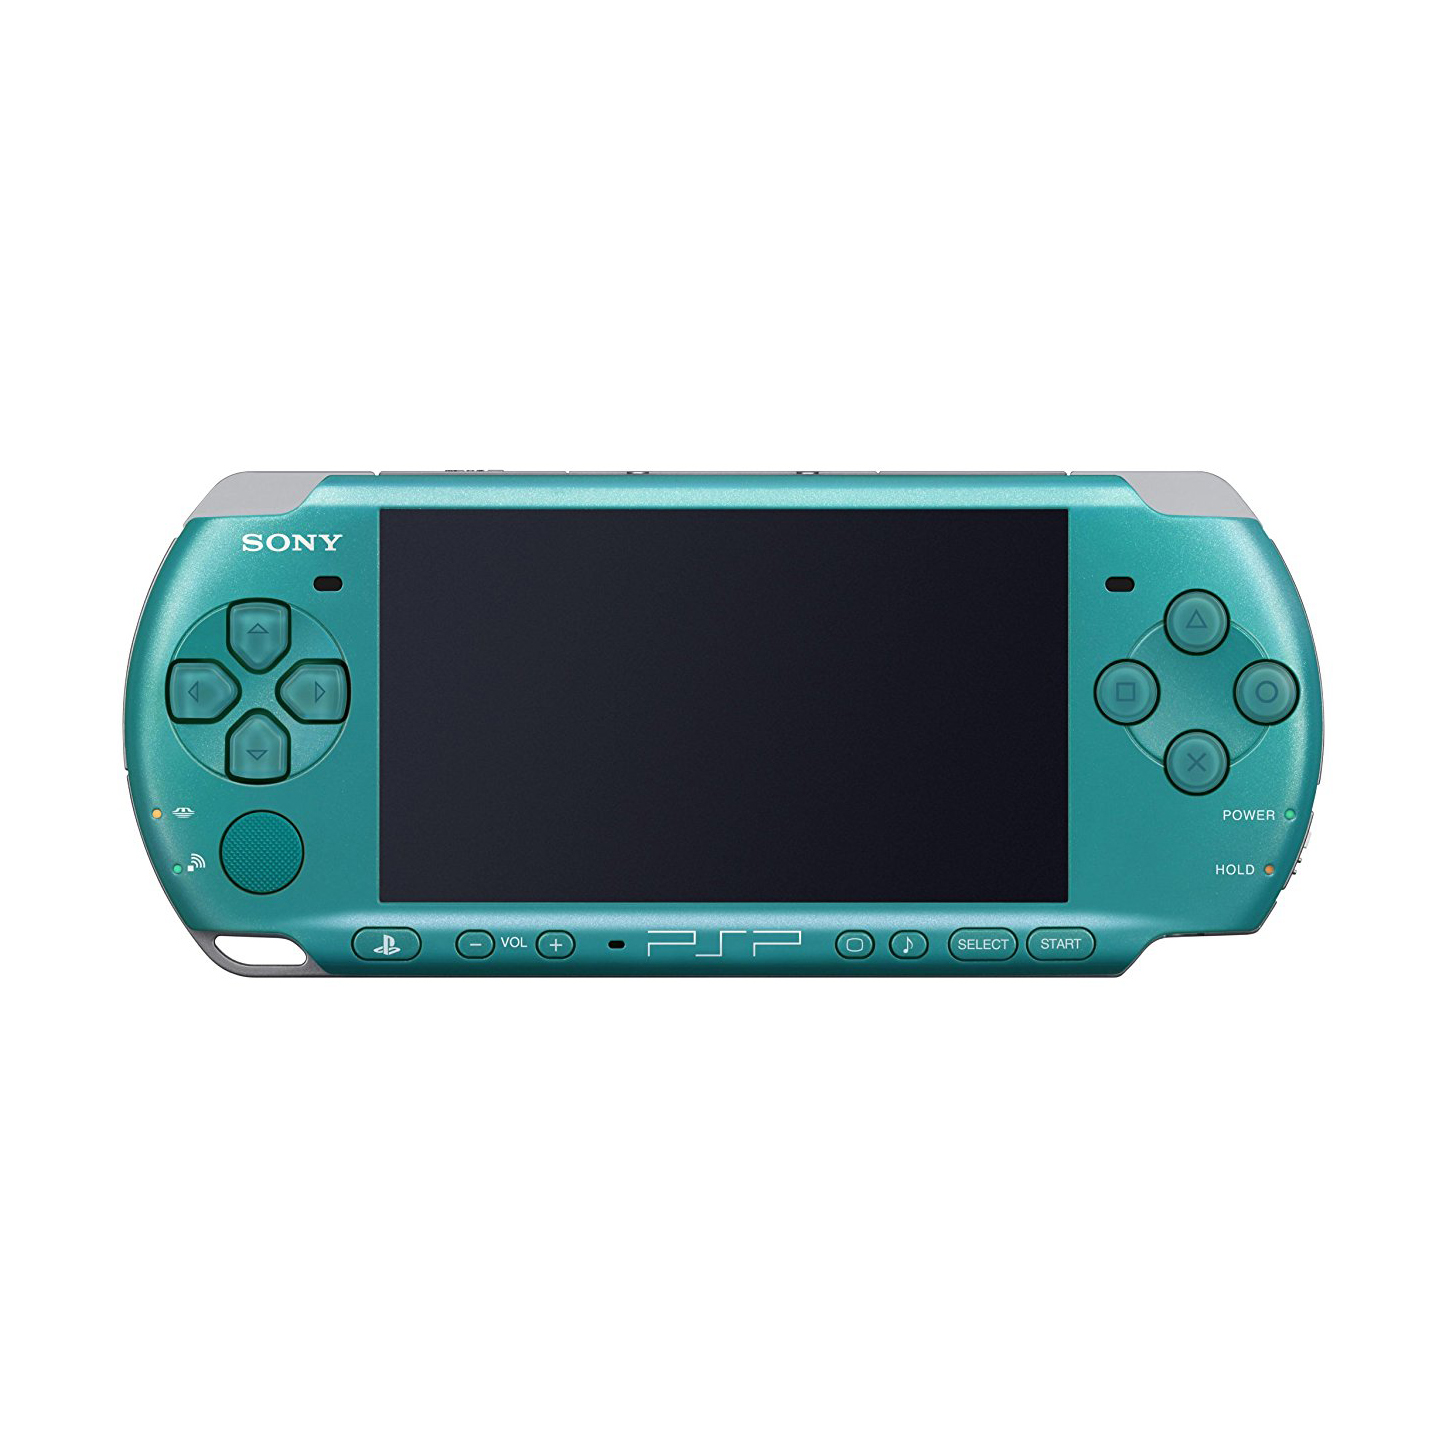 Sony PlayStation Portable (PSP) 3000 Series Handheld Gami...